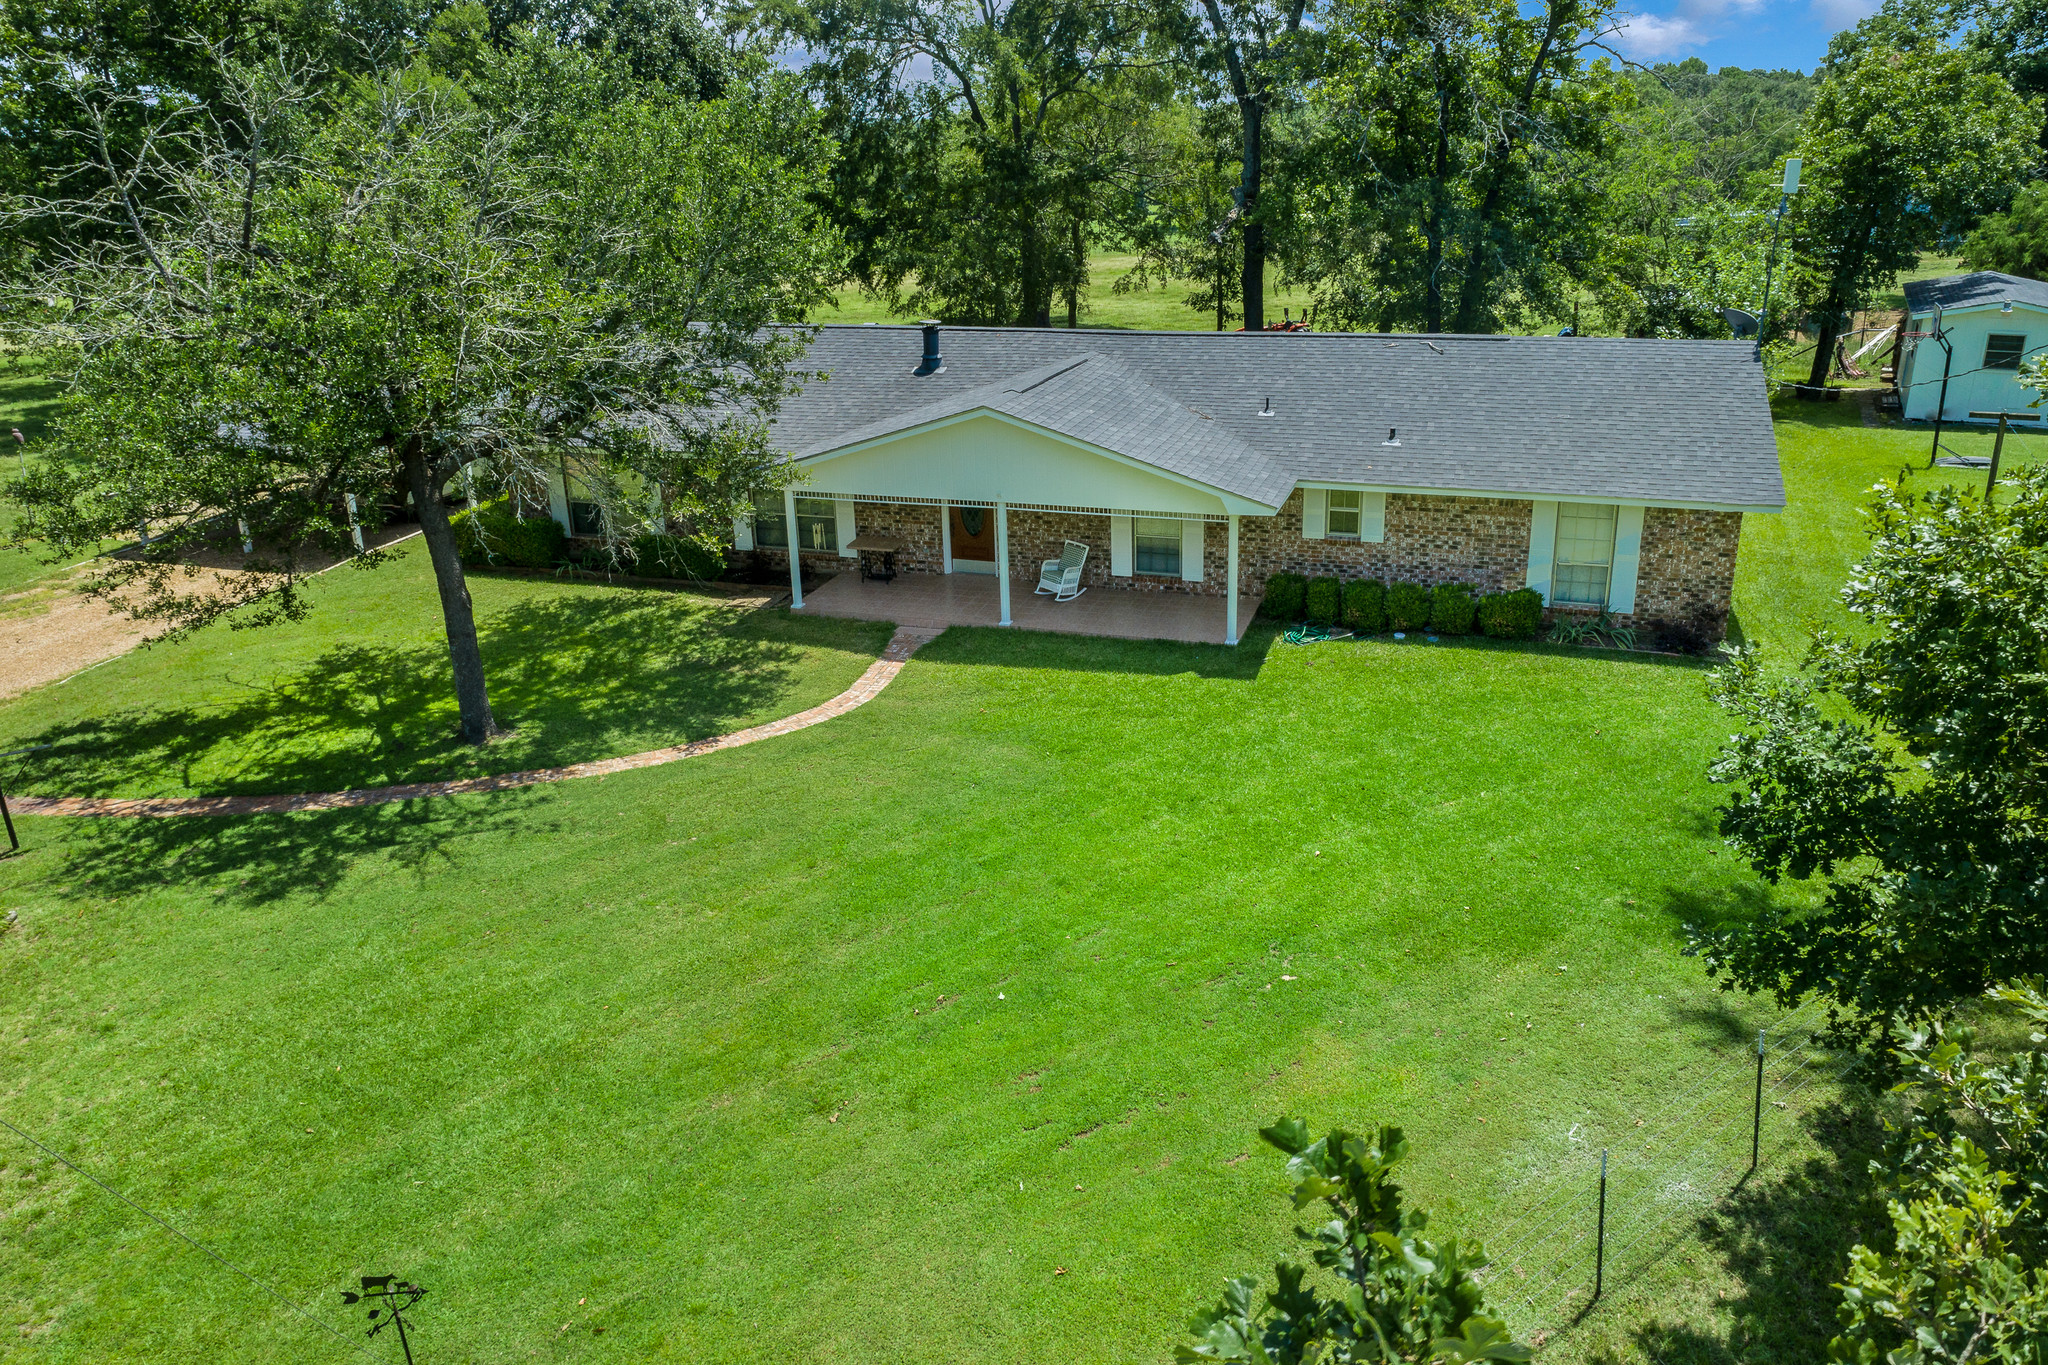 4-Bedroom House In Eustace